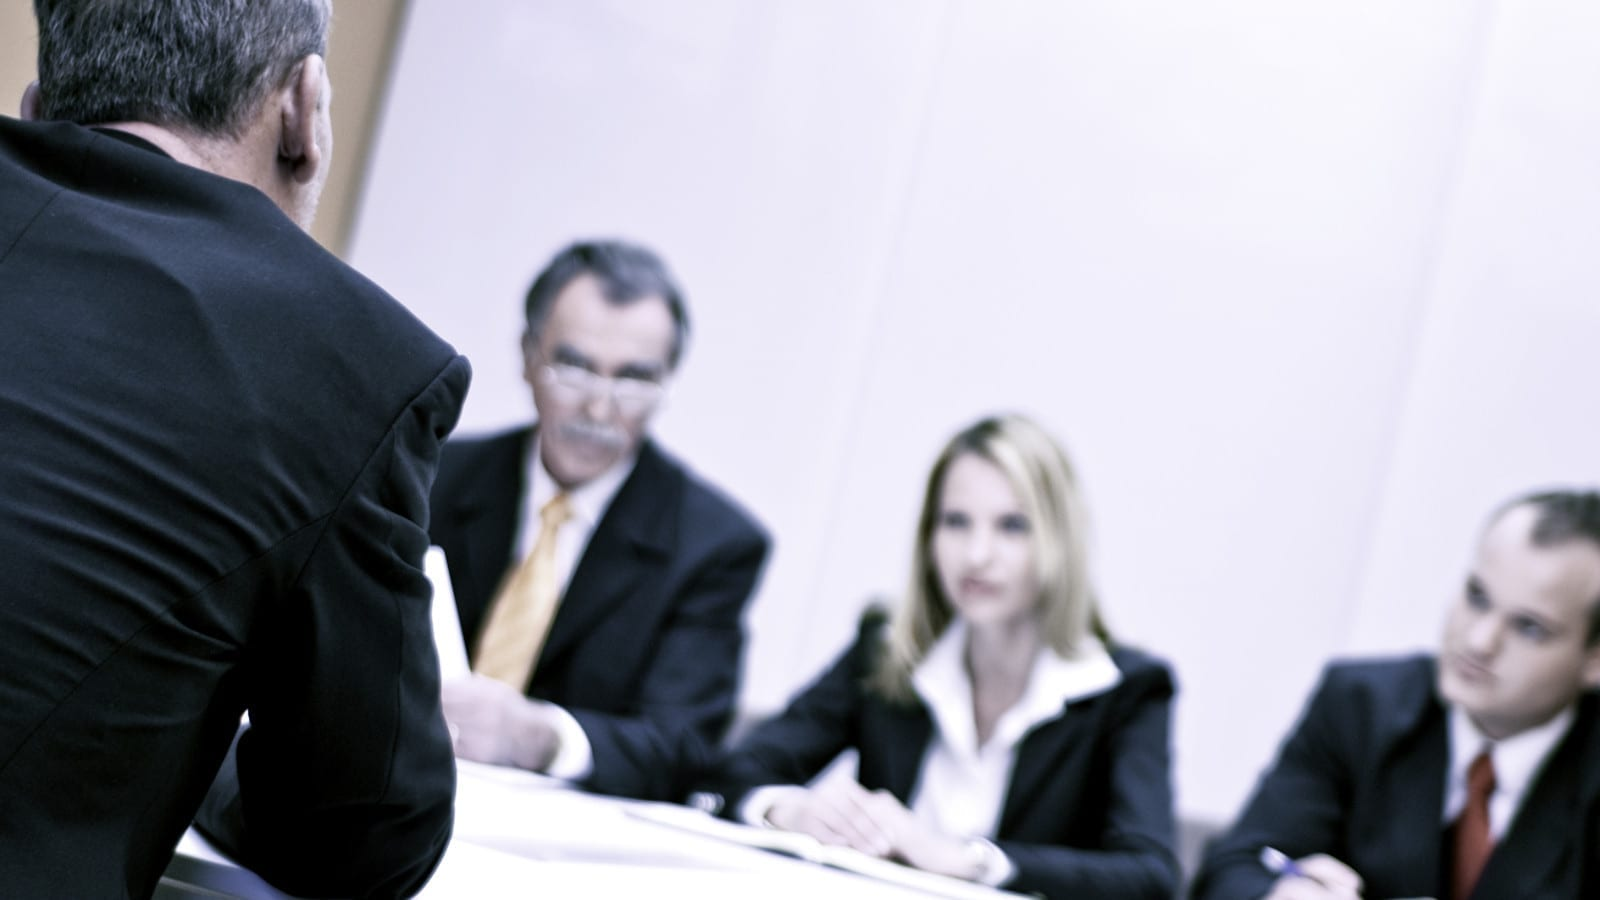 Several Lawyers Meeting Together Privately Stock Photo